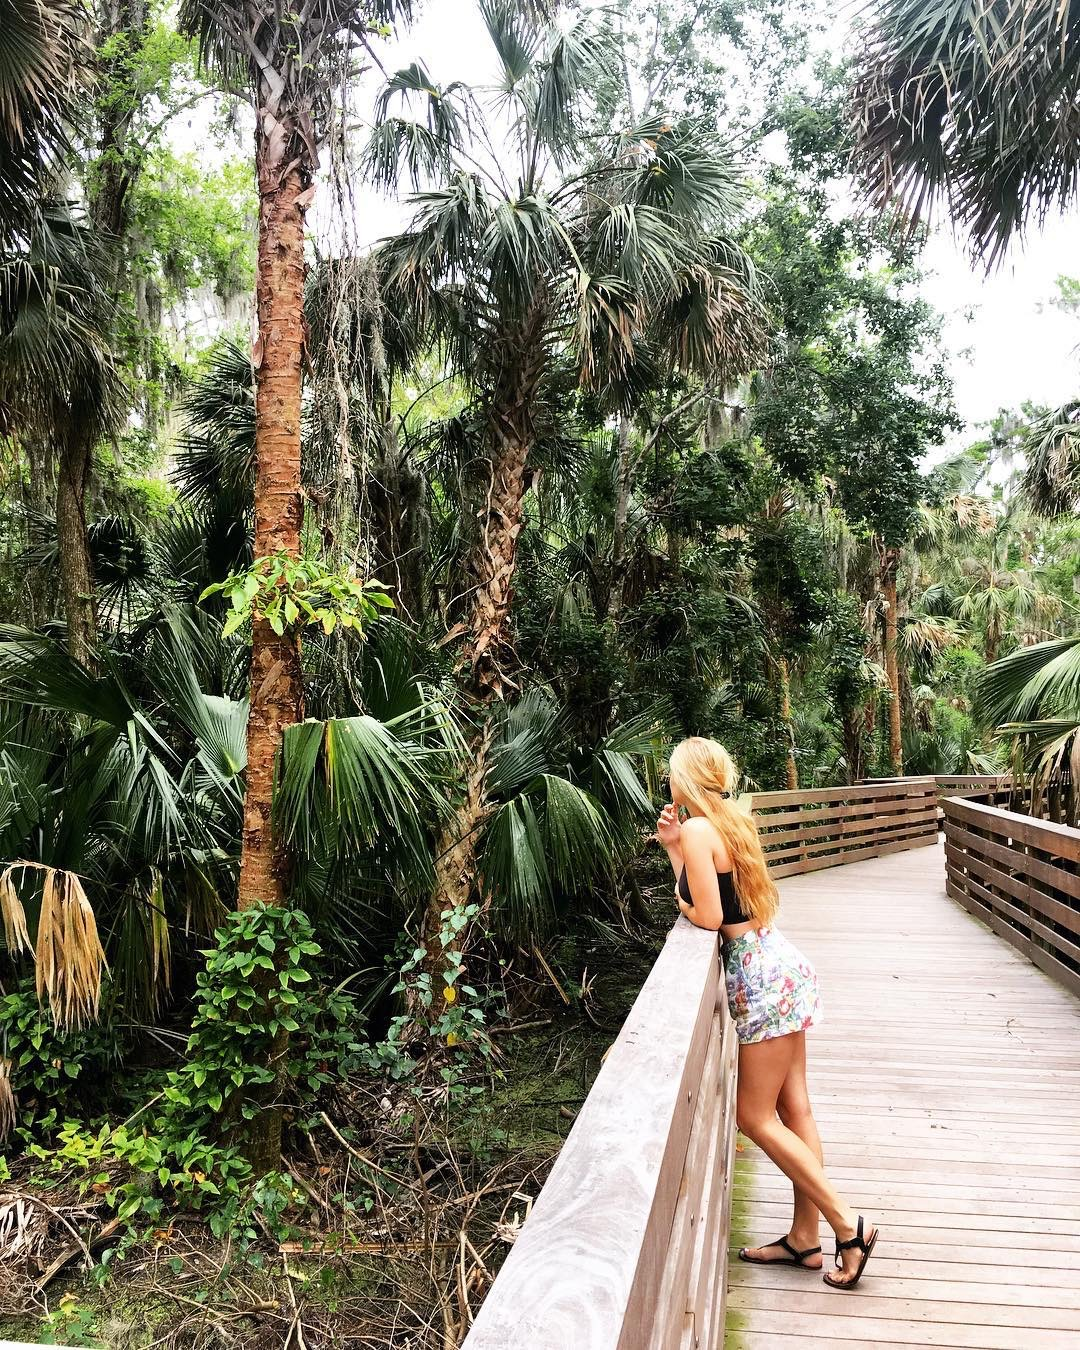 Young woman standing on a boardwalk looking away from the camera towards a palm and oak tree hammock.